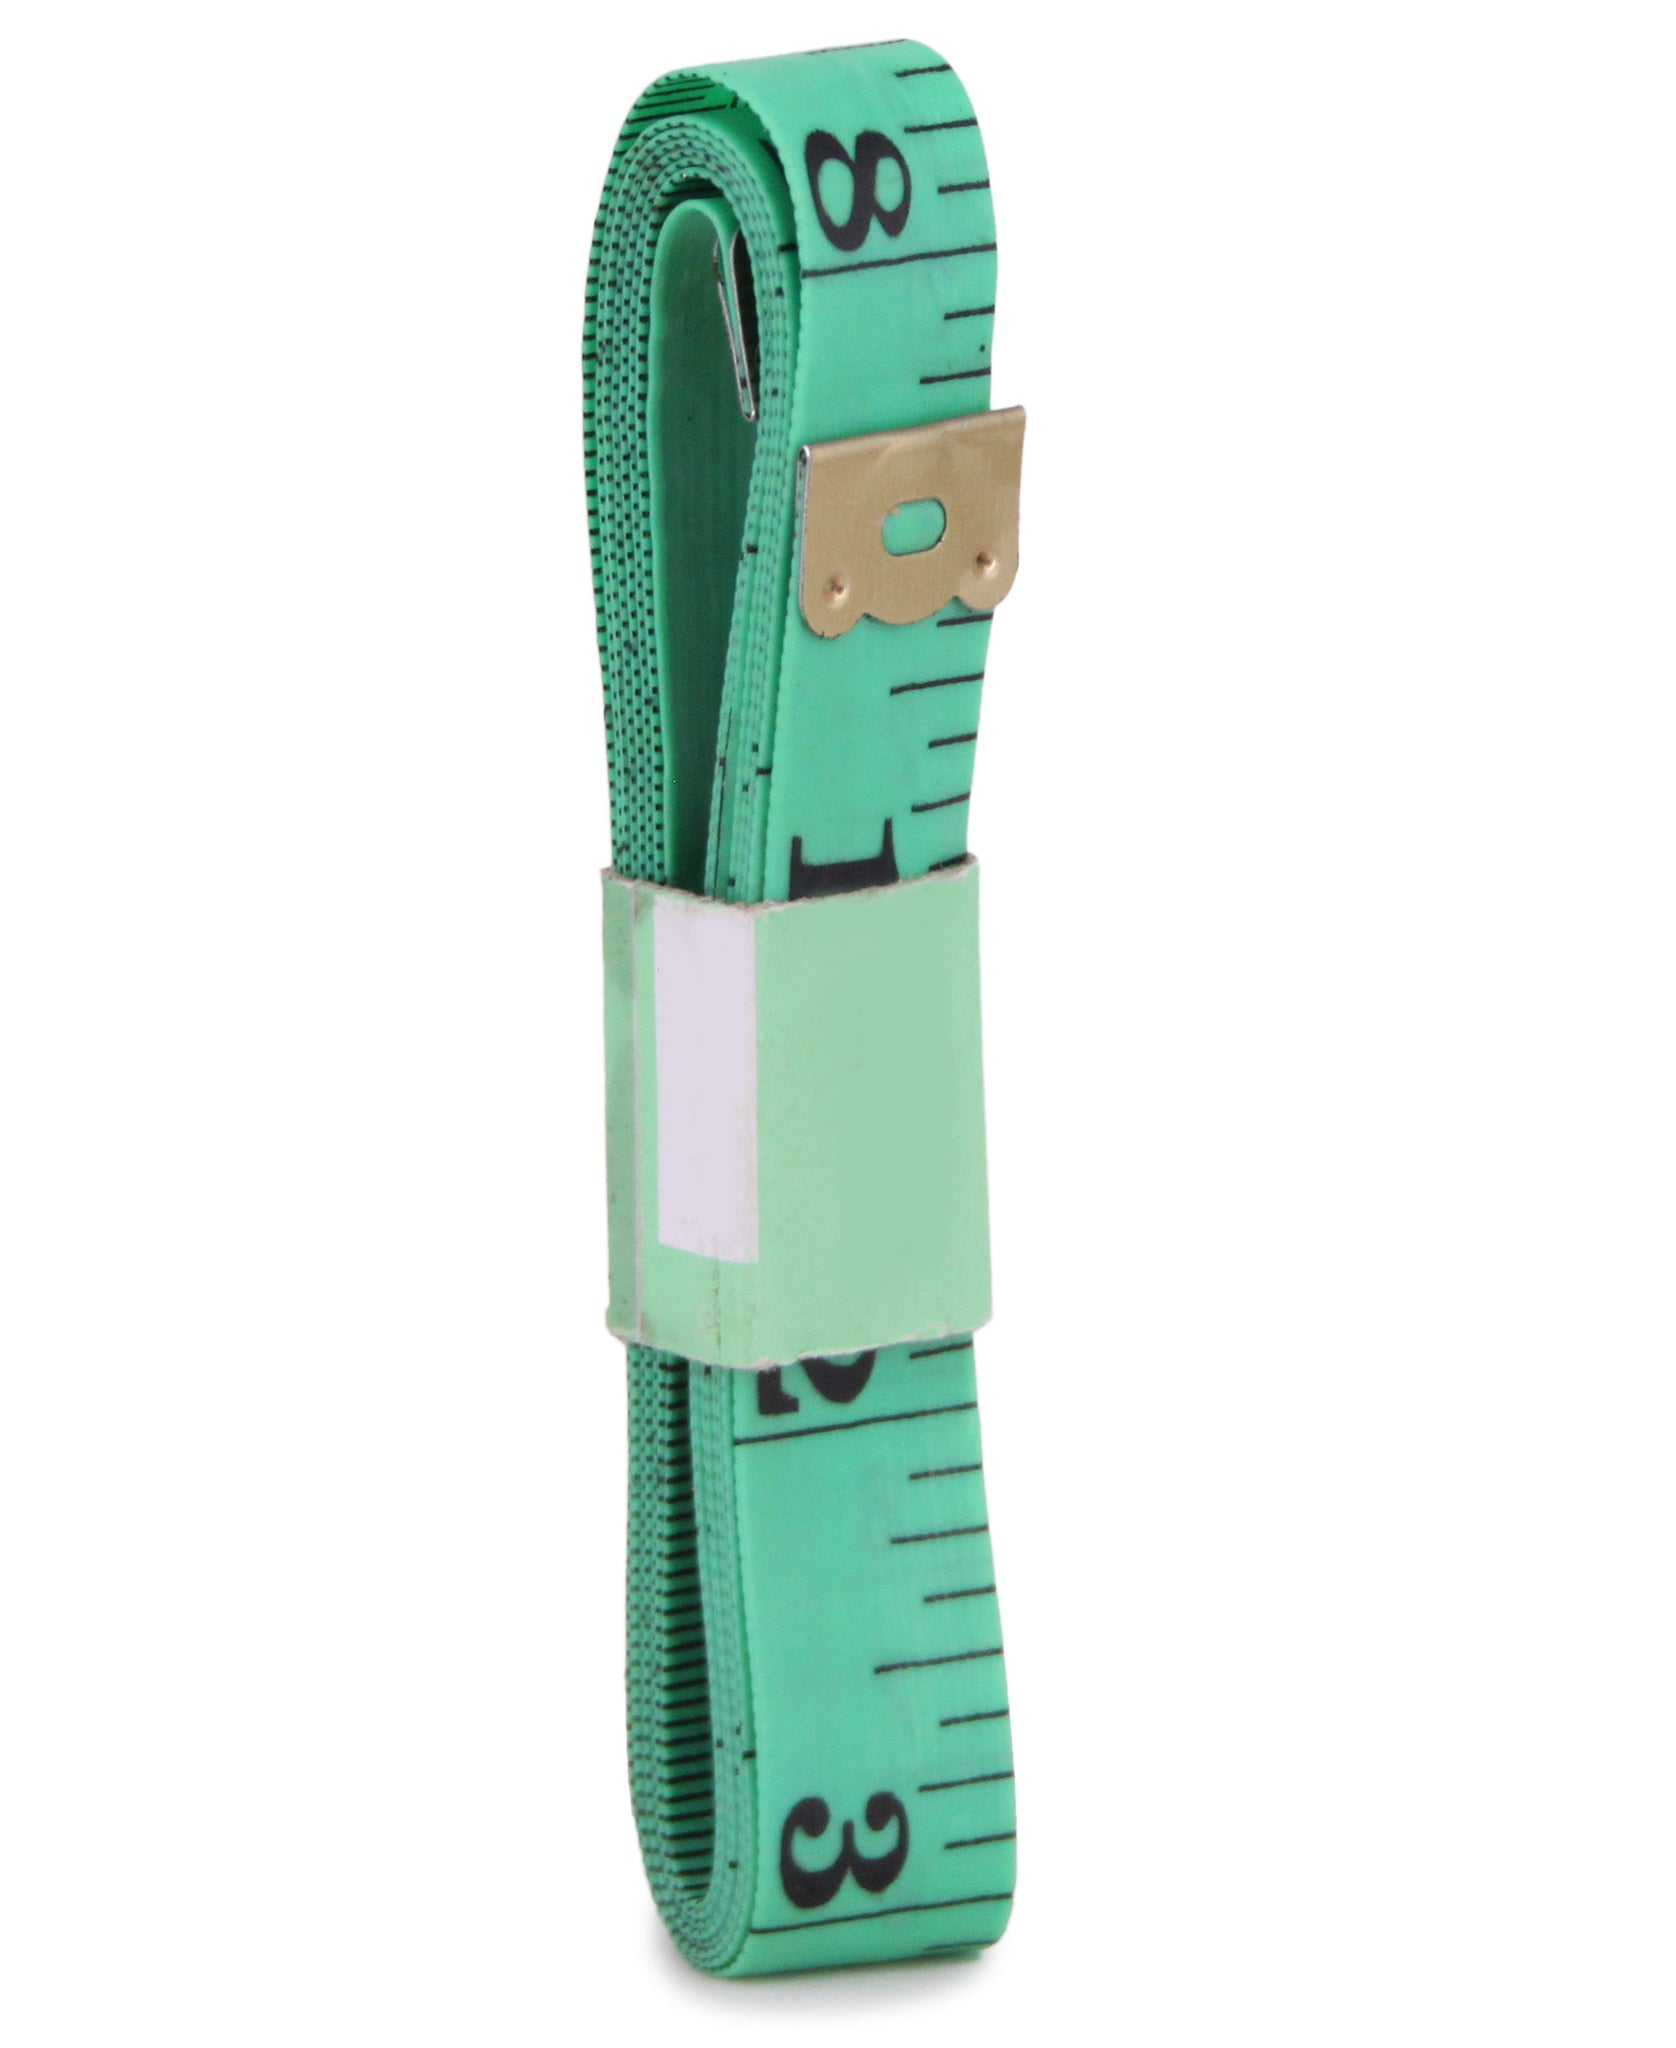 Tailors Measuring Tape - Green